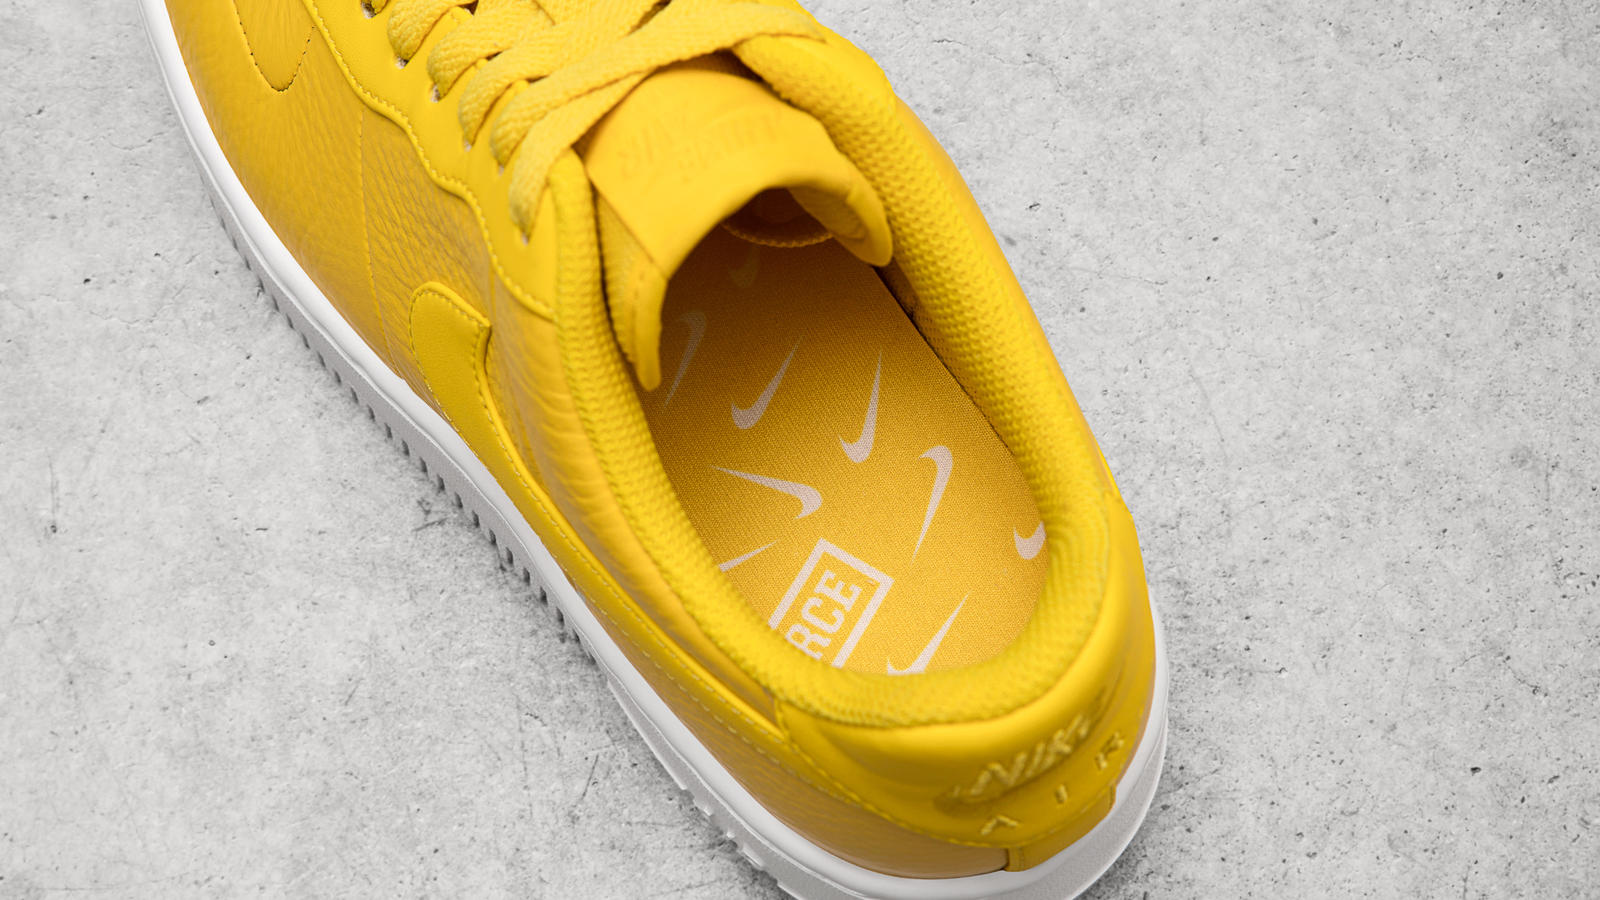 Bread_and_Butter_AF1_5_hd_1600.jpg